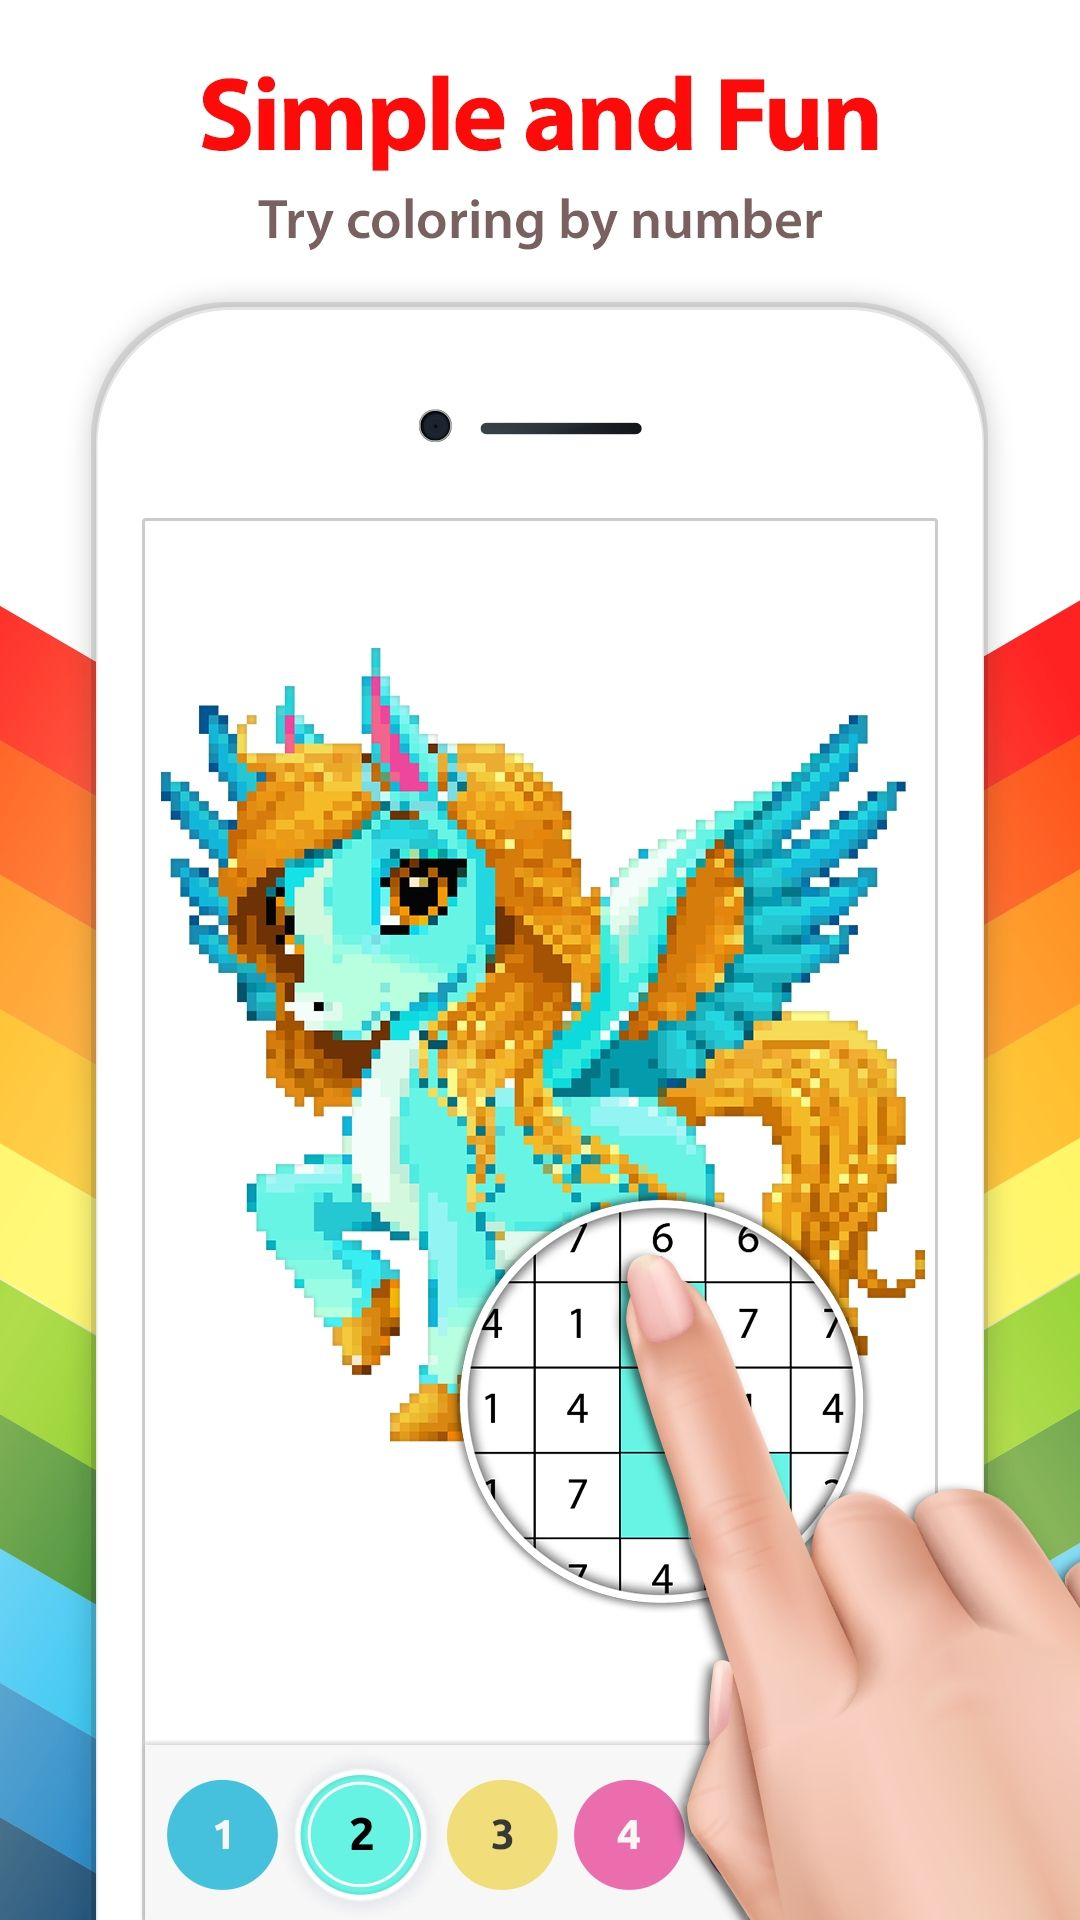 Unicorn Coloring Book App Unicorn Coloring Book App Unicorn Coloring Book App Download Unicorn Number C Coloring Book App Coloring Books Love Coloring Pages